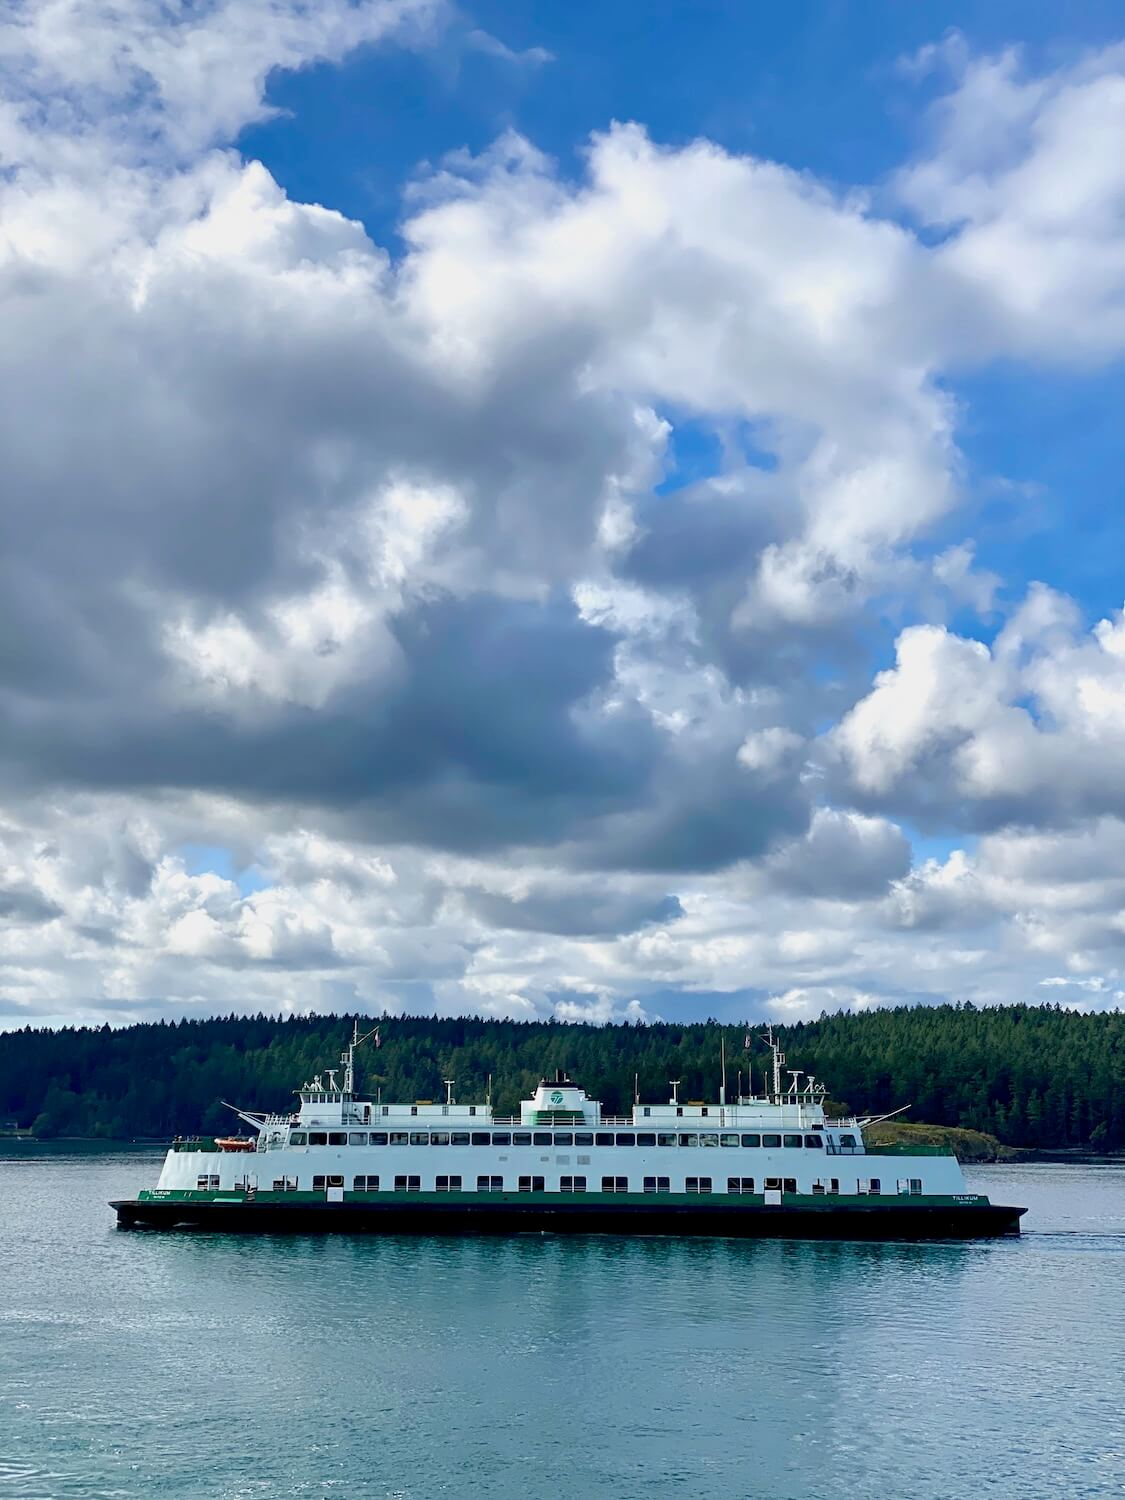 A Washington State Ferry crossing through the water of the Puget Sound. The two level ferry is painted white with green trim and passes in front of an island covered with green fir trees. Up above the clouds form gray and white patches amongst a bright blue sky.